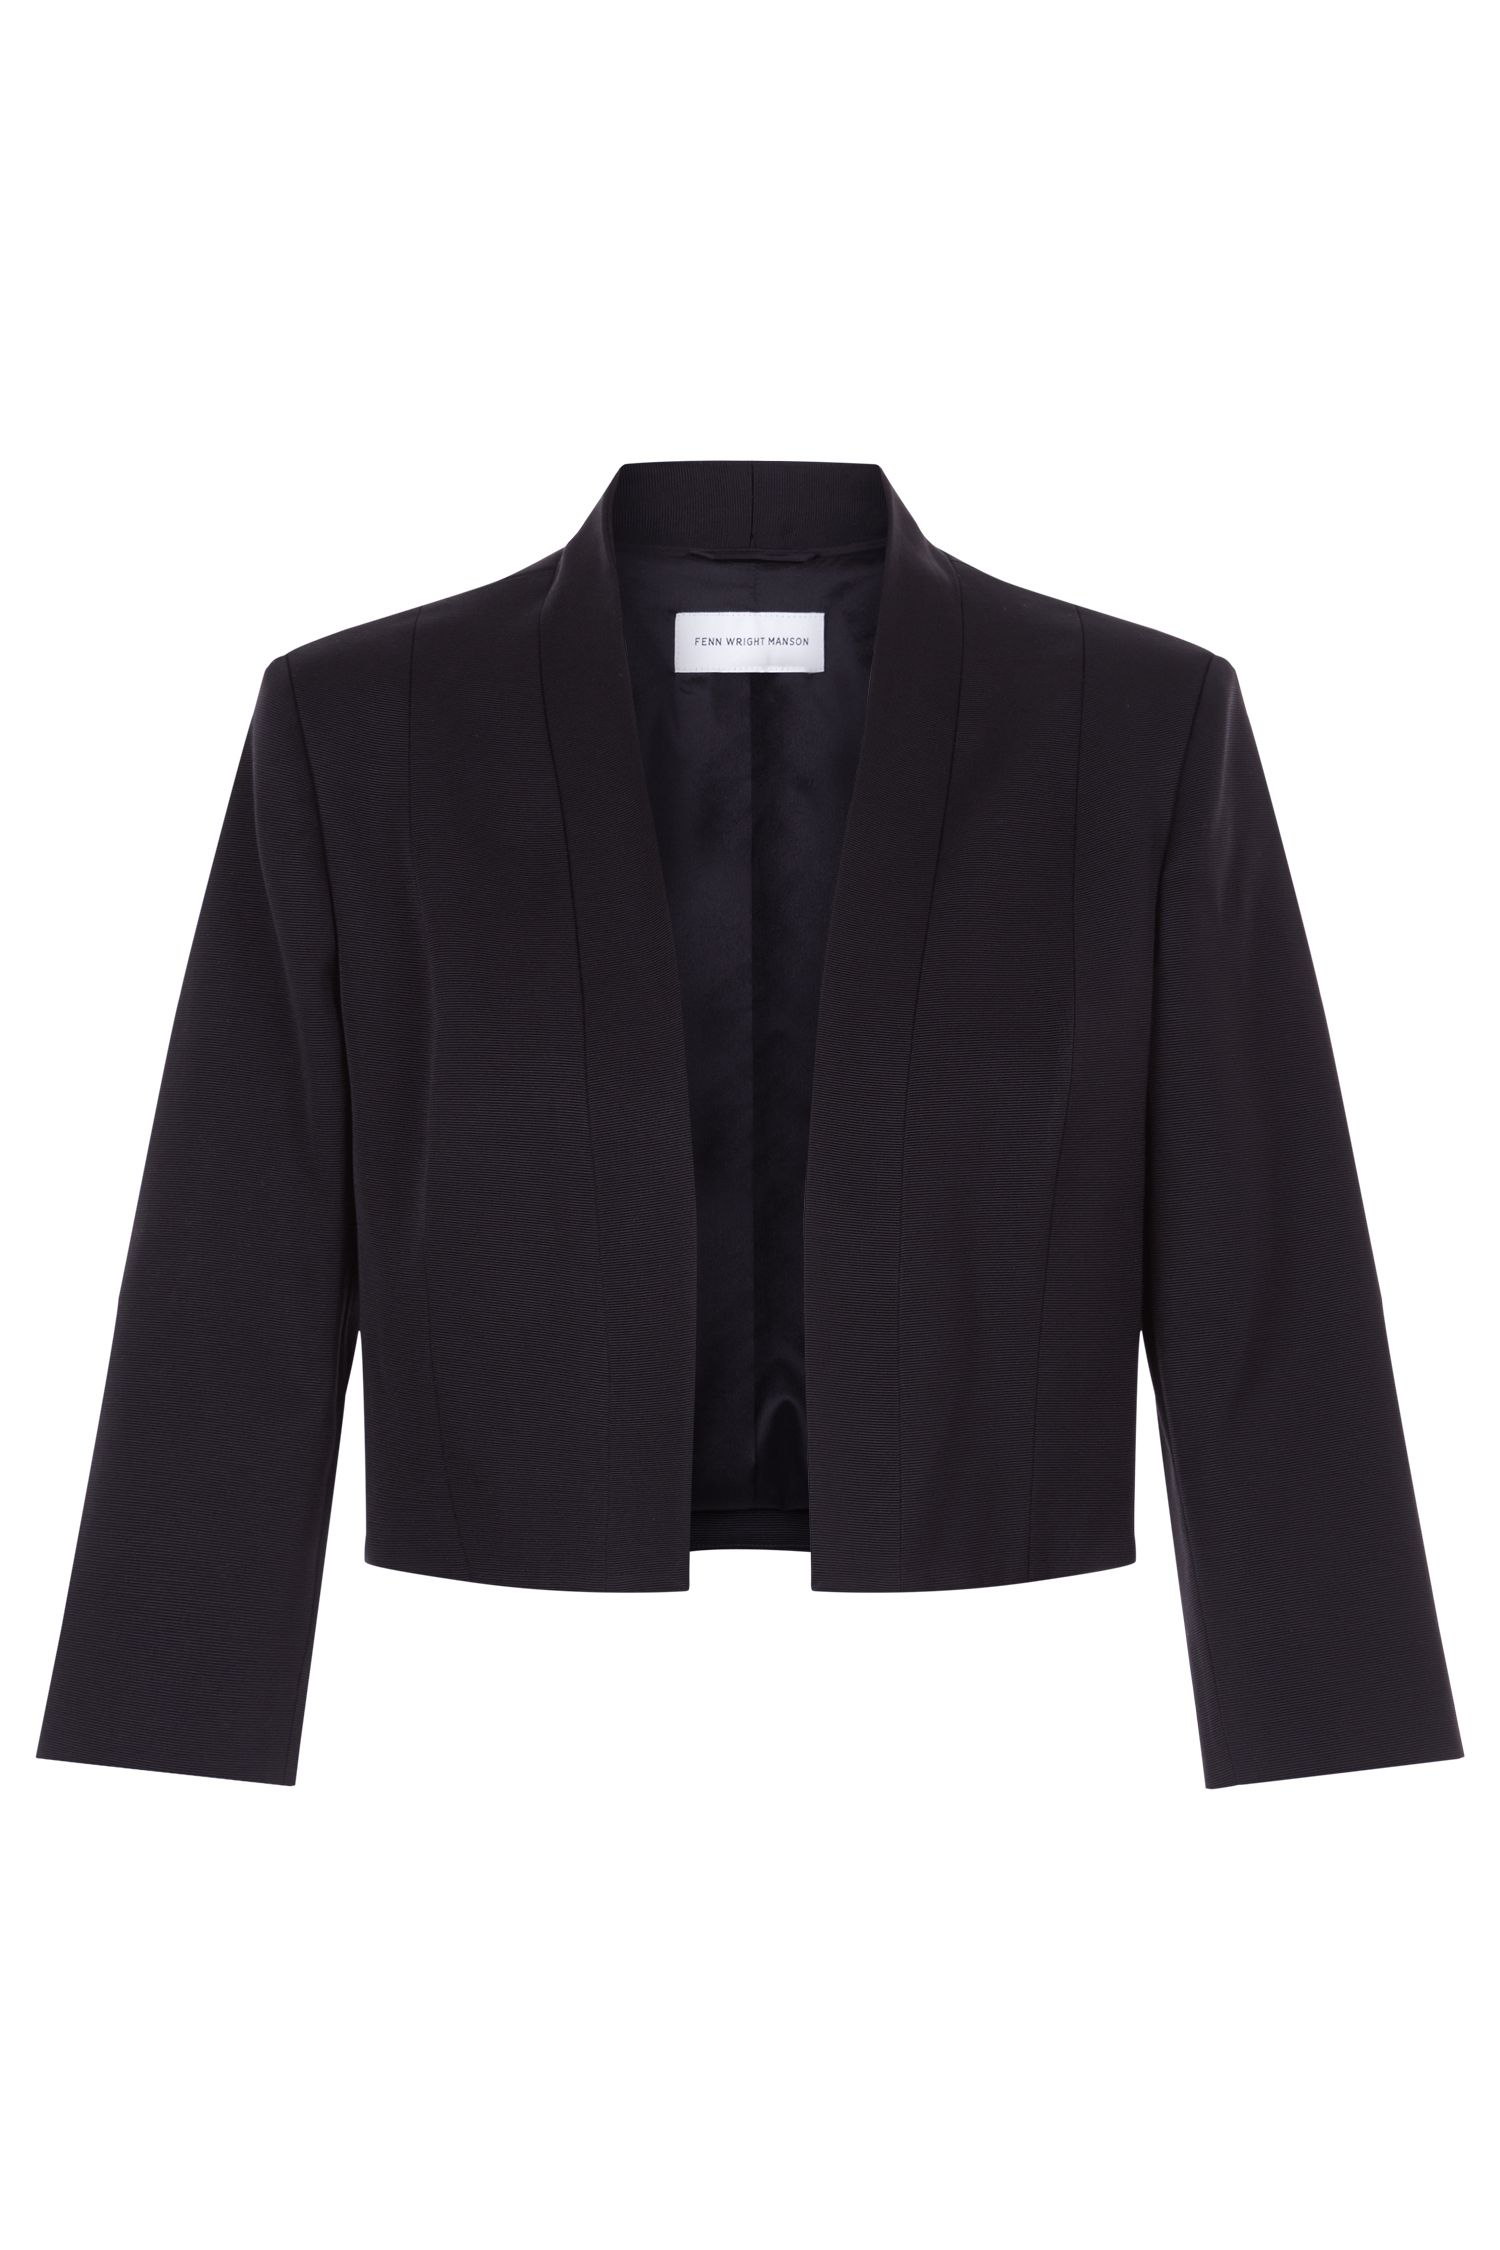 Fenn Wright Manson Lichtenstein Jacket, Black